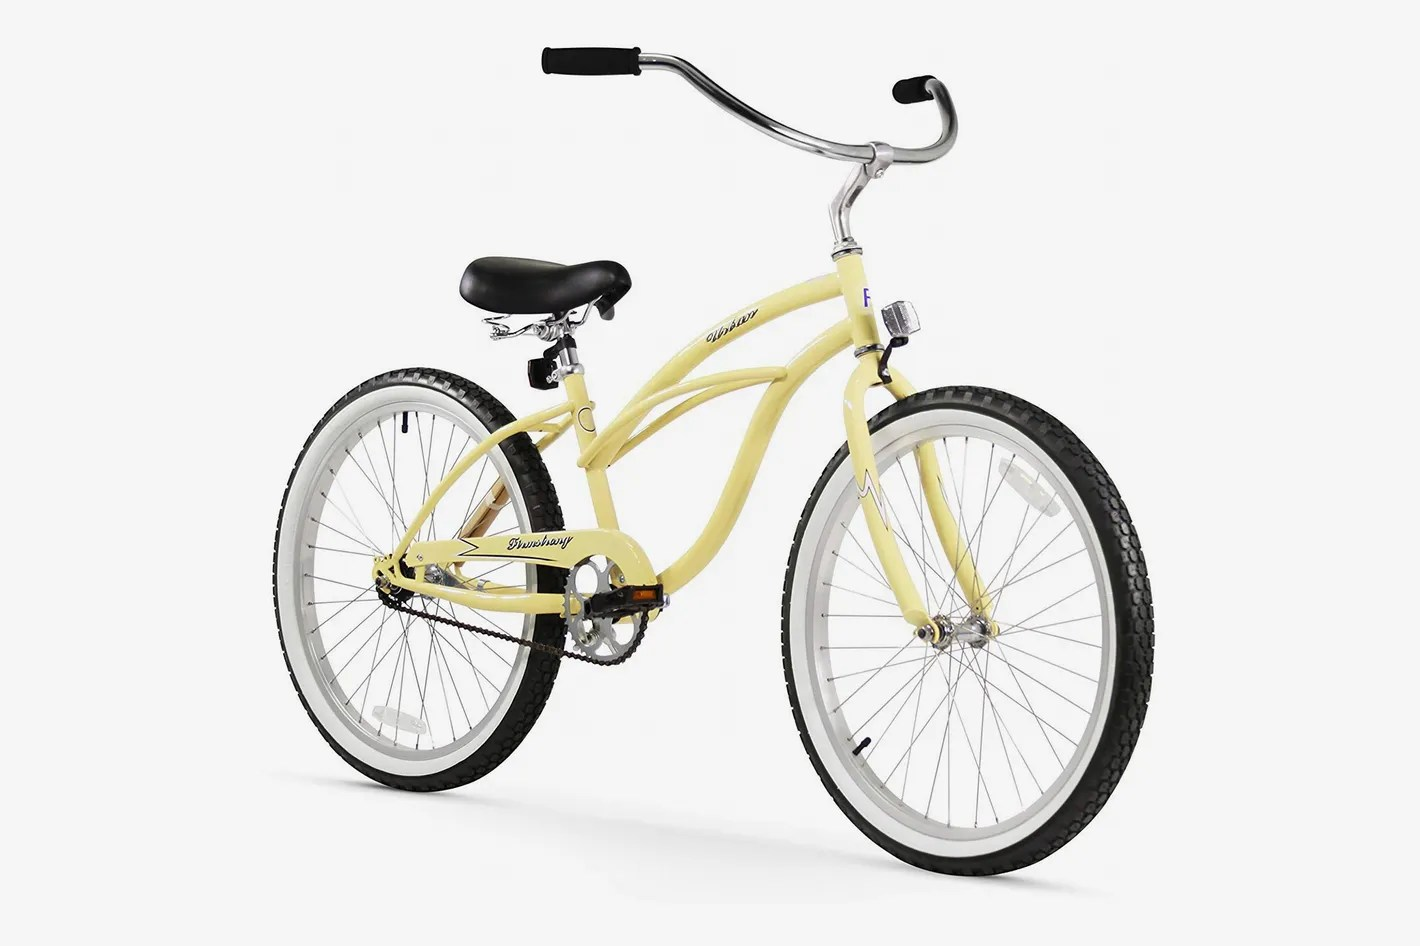 Bad Bike Beach Vintage Side 12 Best Cruiser Bikes For Men And Women 2018